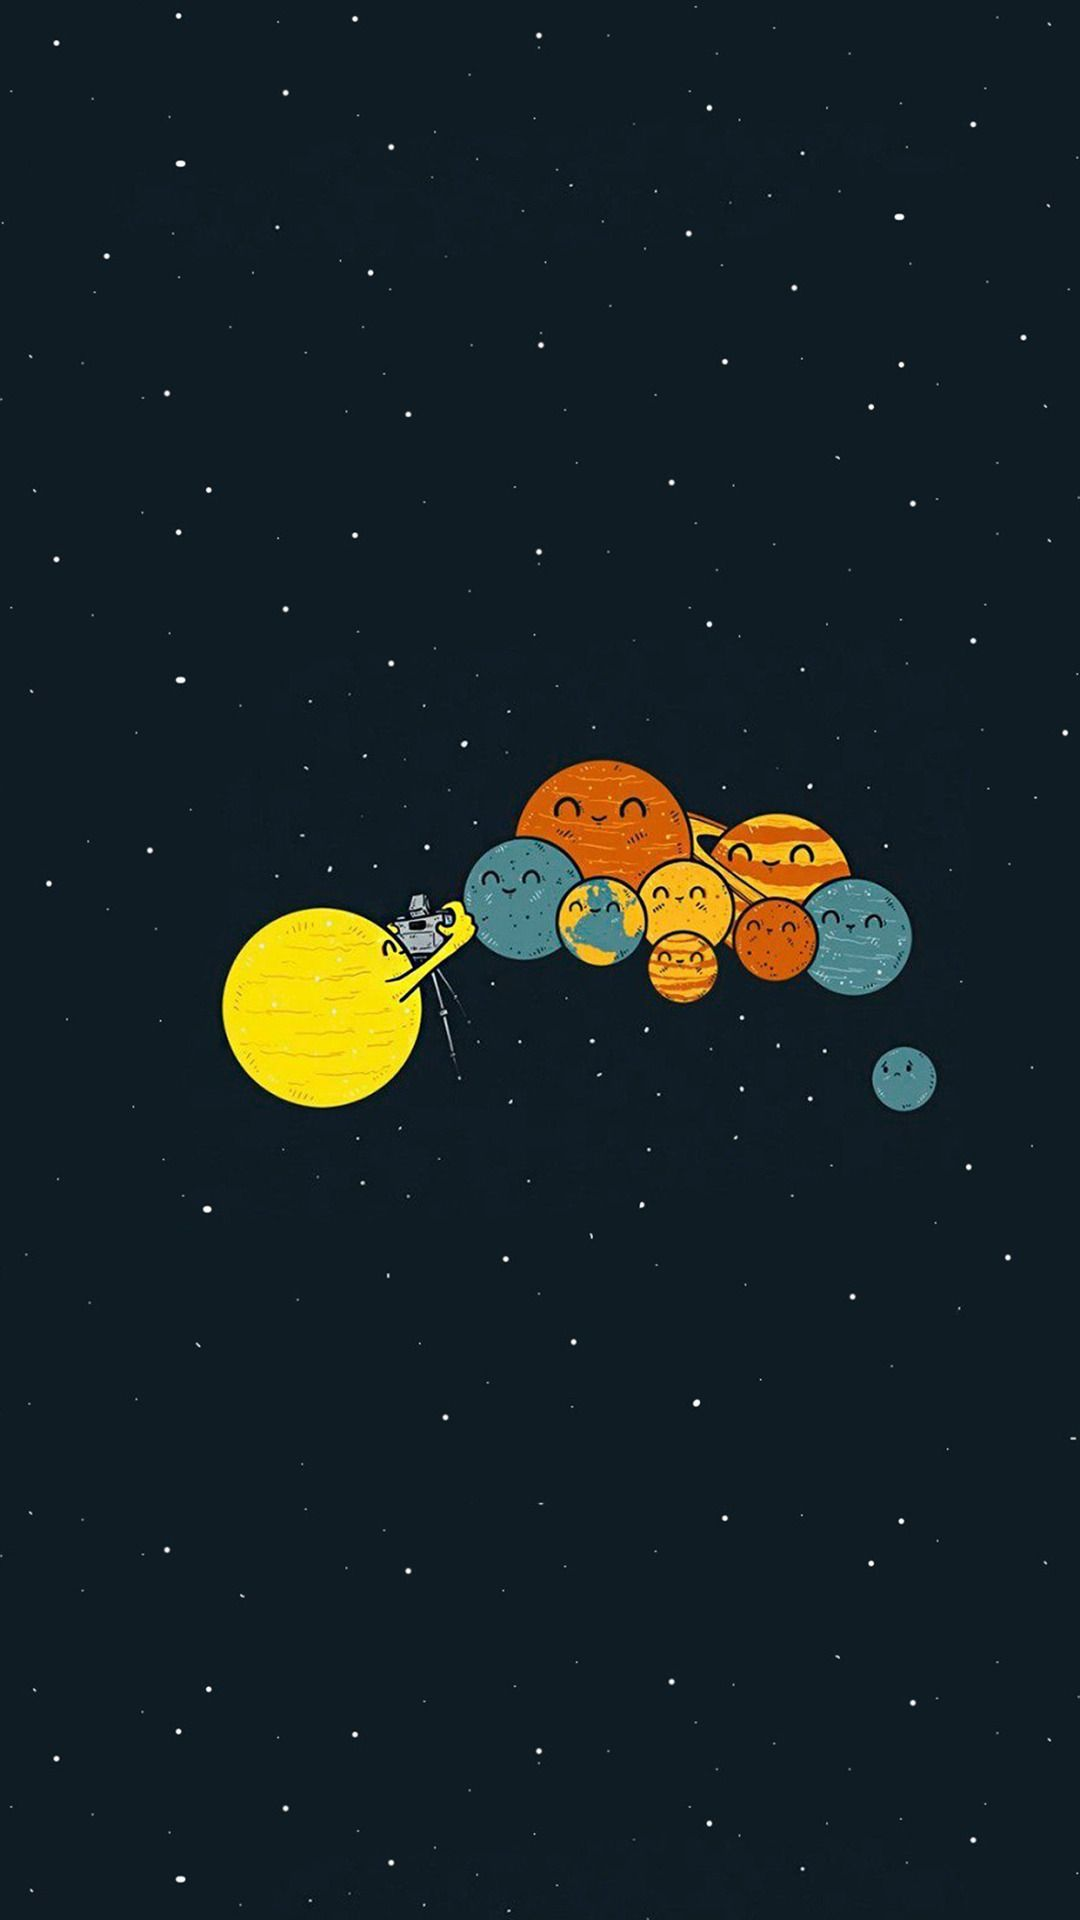 Mobile Wallpapers Planets Cute Illustration Space Art Iphone6